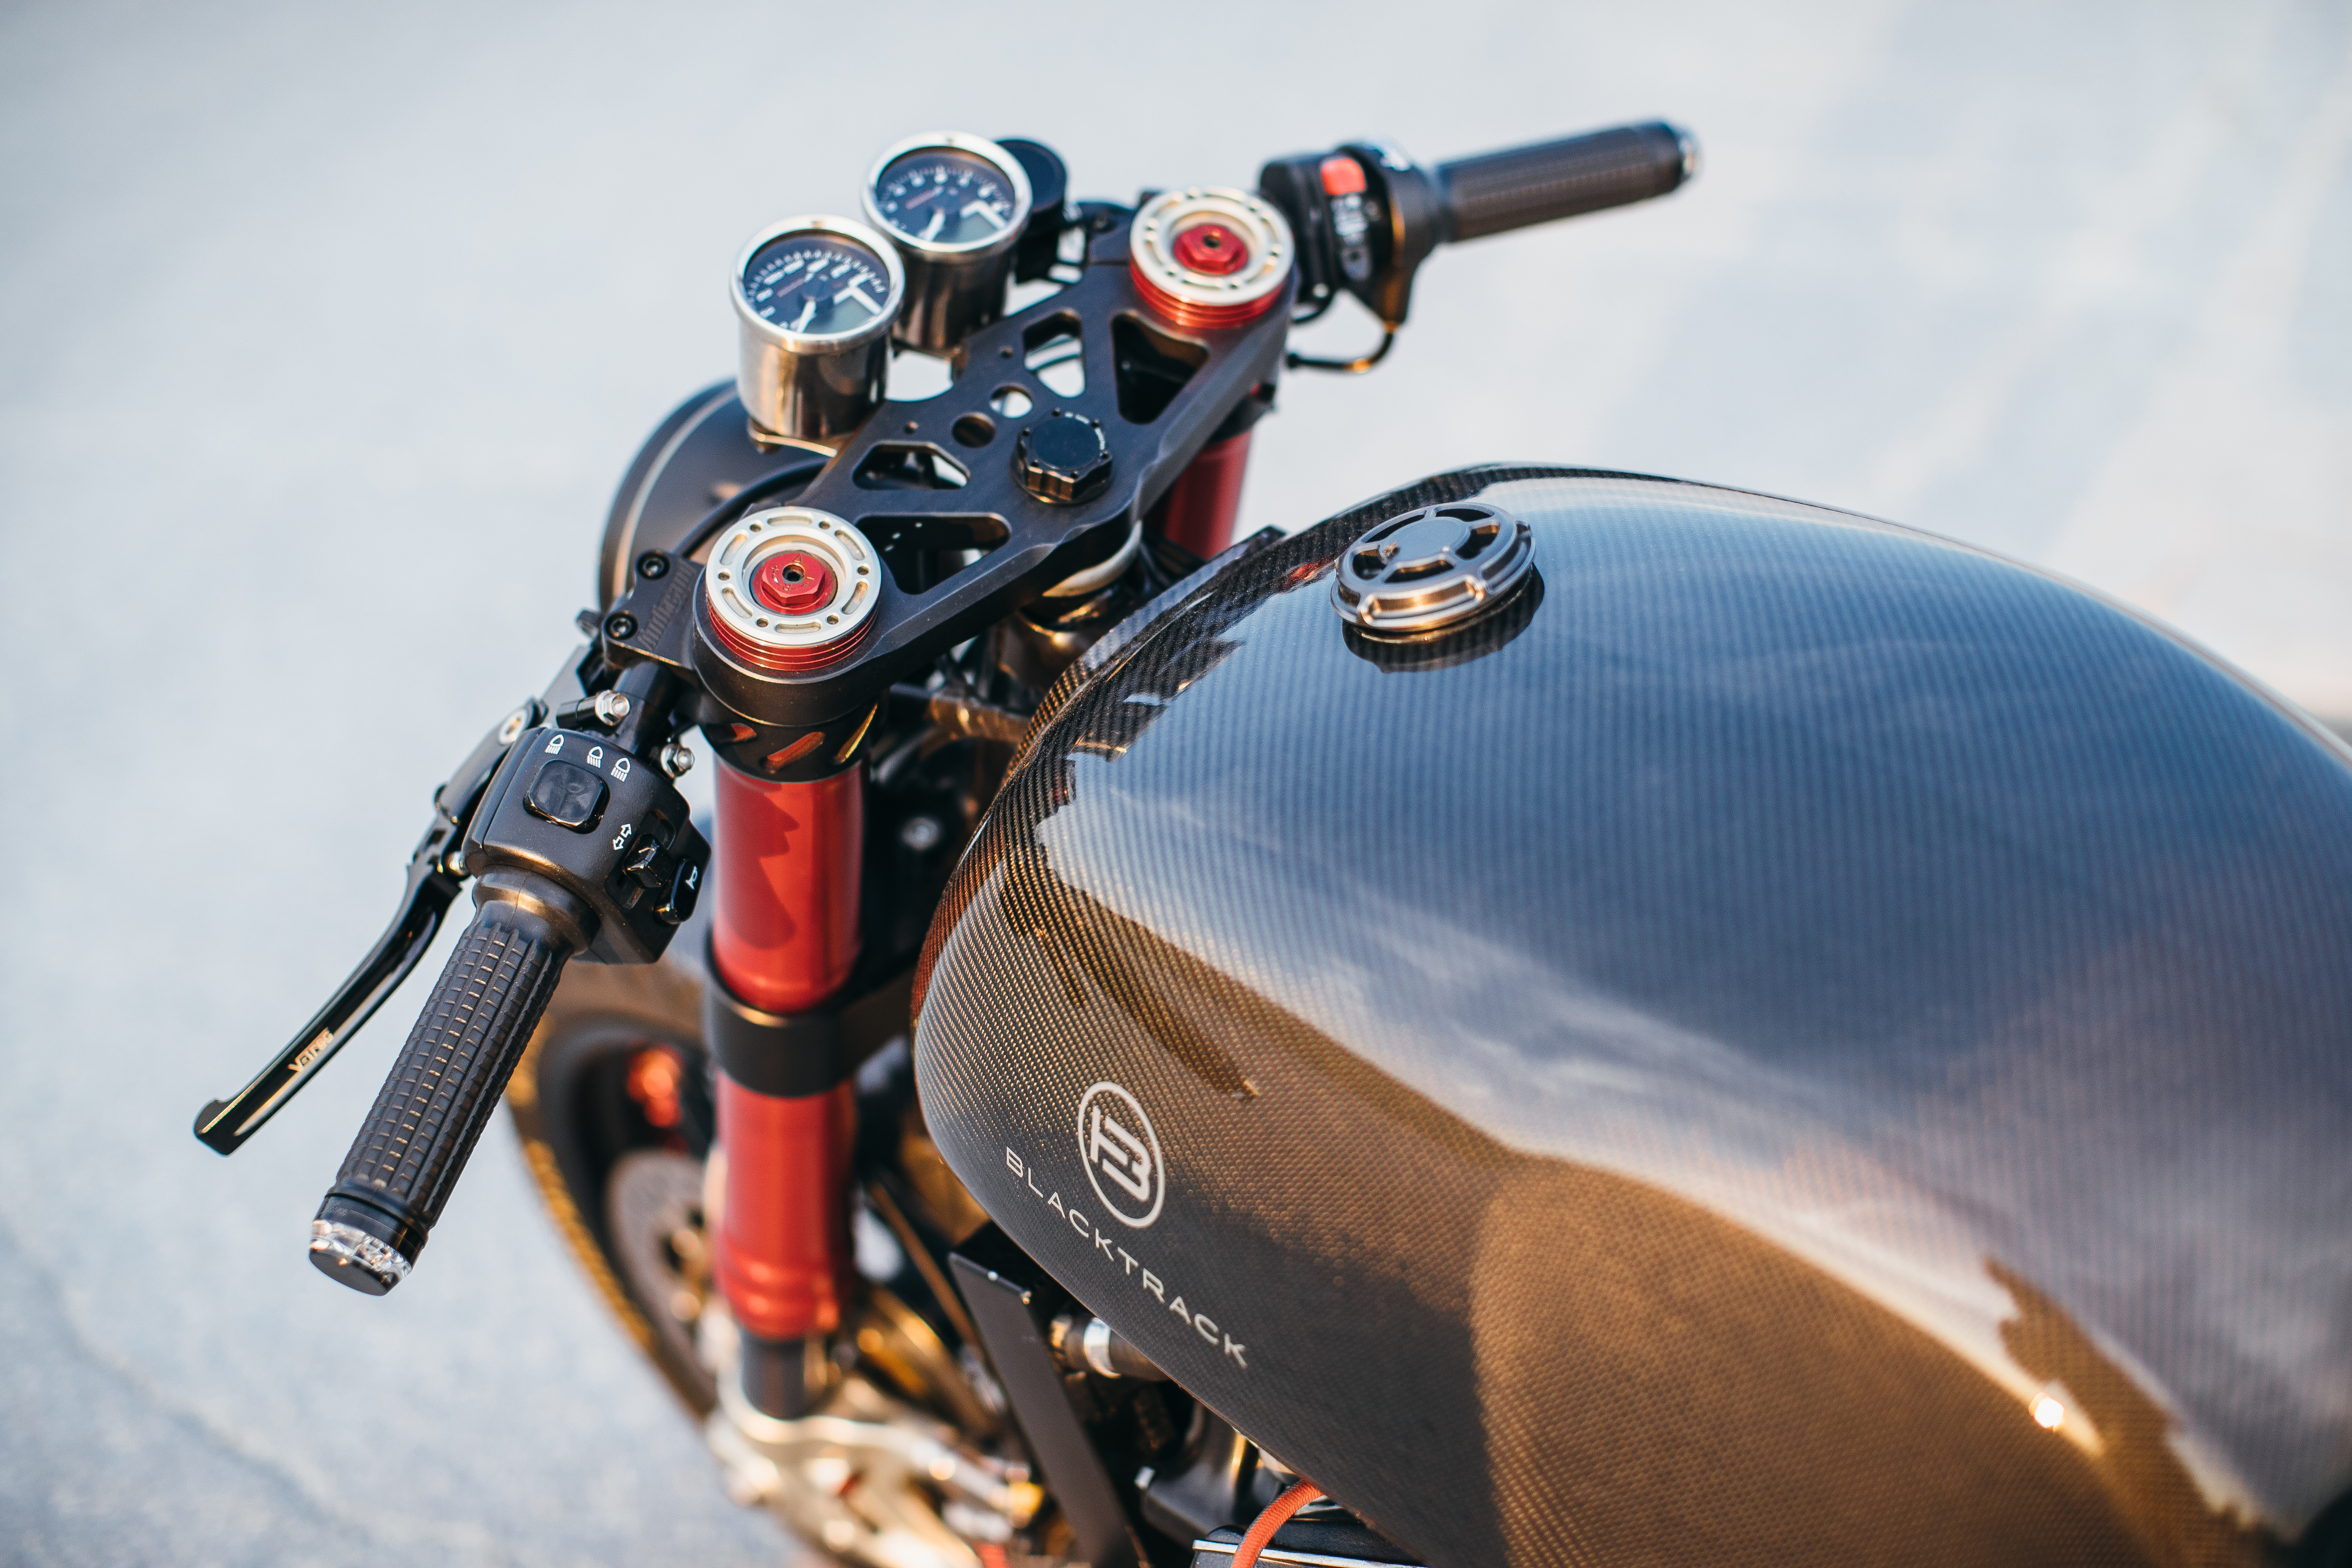 BT-01 Carbon cafe racer CX500